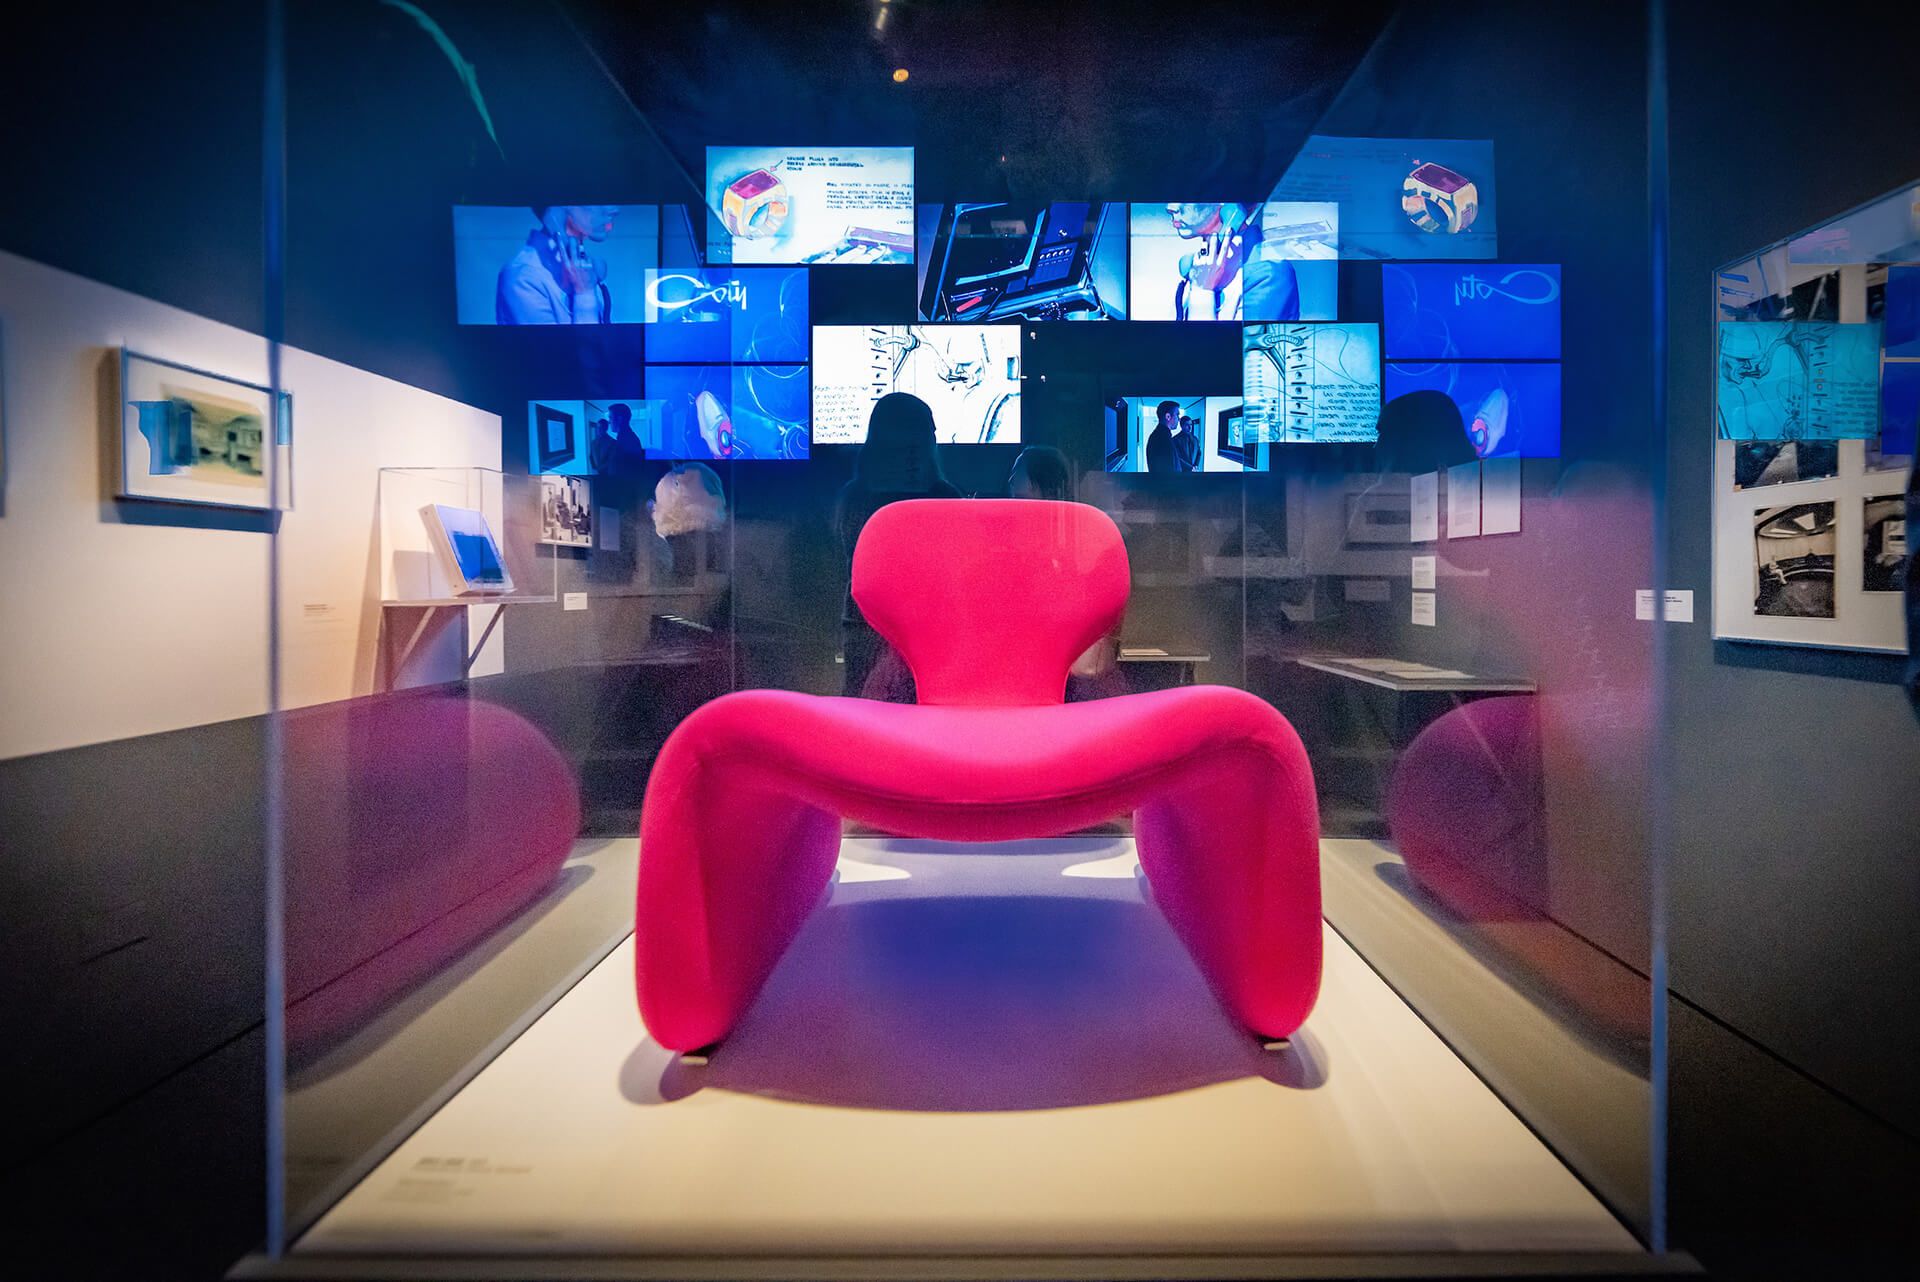 The iconic Djinn chair designed by Olivier Mourgue, seen in the Hilton Hotel lobby set of 2001: A Space Odyssey (on loan from Film and Furniture) | Space Odyssey exhibition | Stanley Kubrick | STIRworld